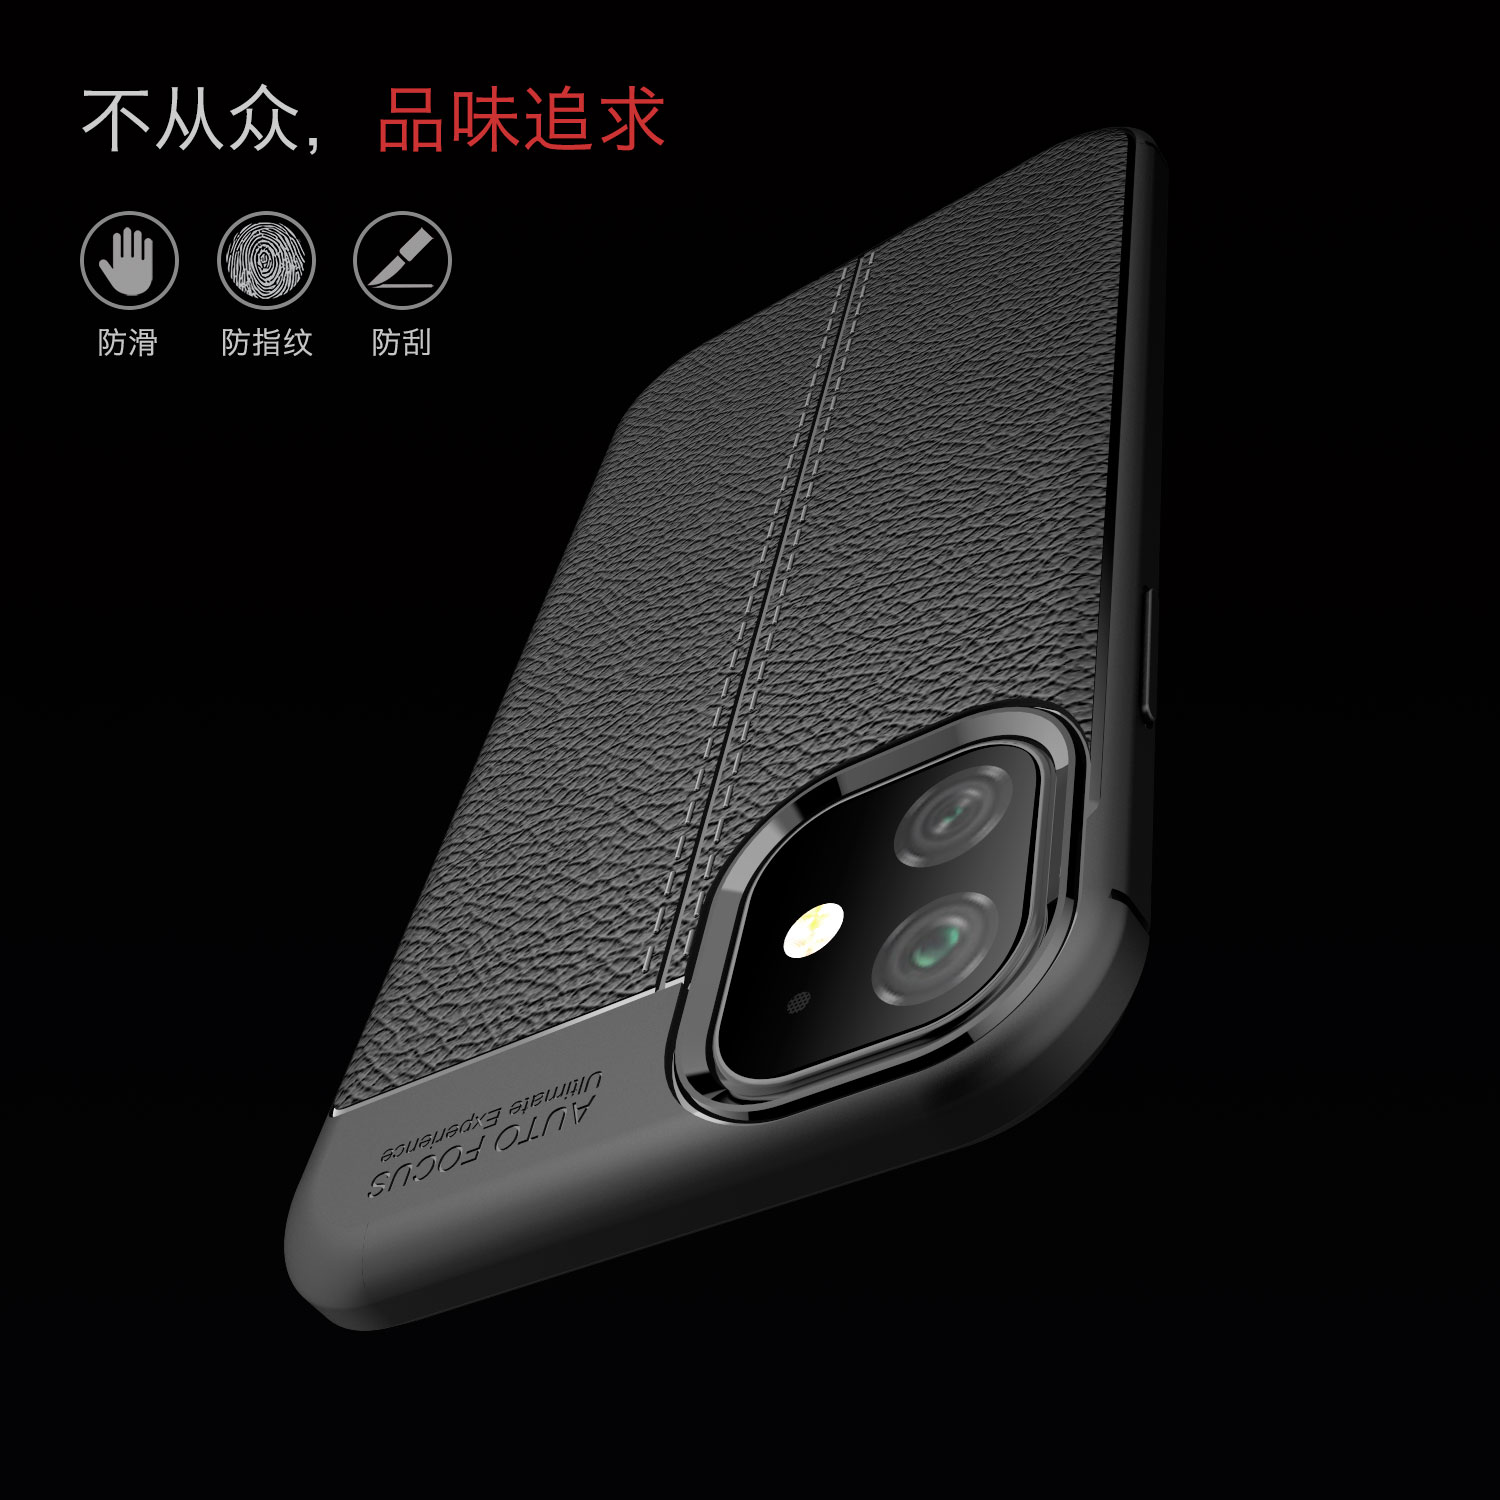 For iPhone 11 Pro Max Case 7 8 5S 6S Plus XR XS SE Apple Case For iPhone 11 Pro Max Case 7 8 5S 6S Plus XR XS SE Apple Case Luxury Leather PU Soft Silicone Phone Back Cover For iPhone 11 Pro